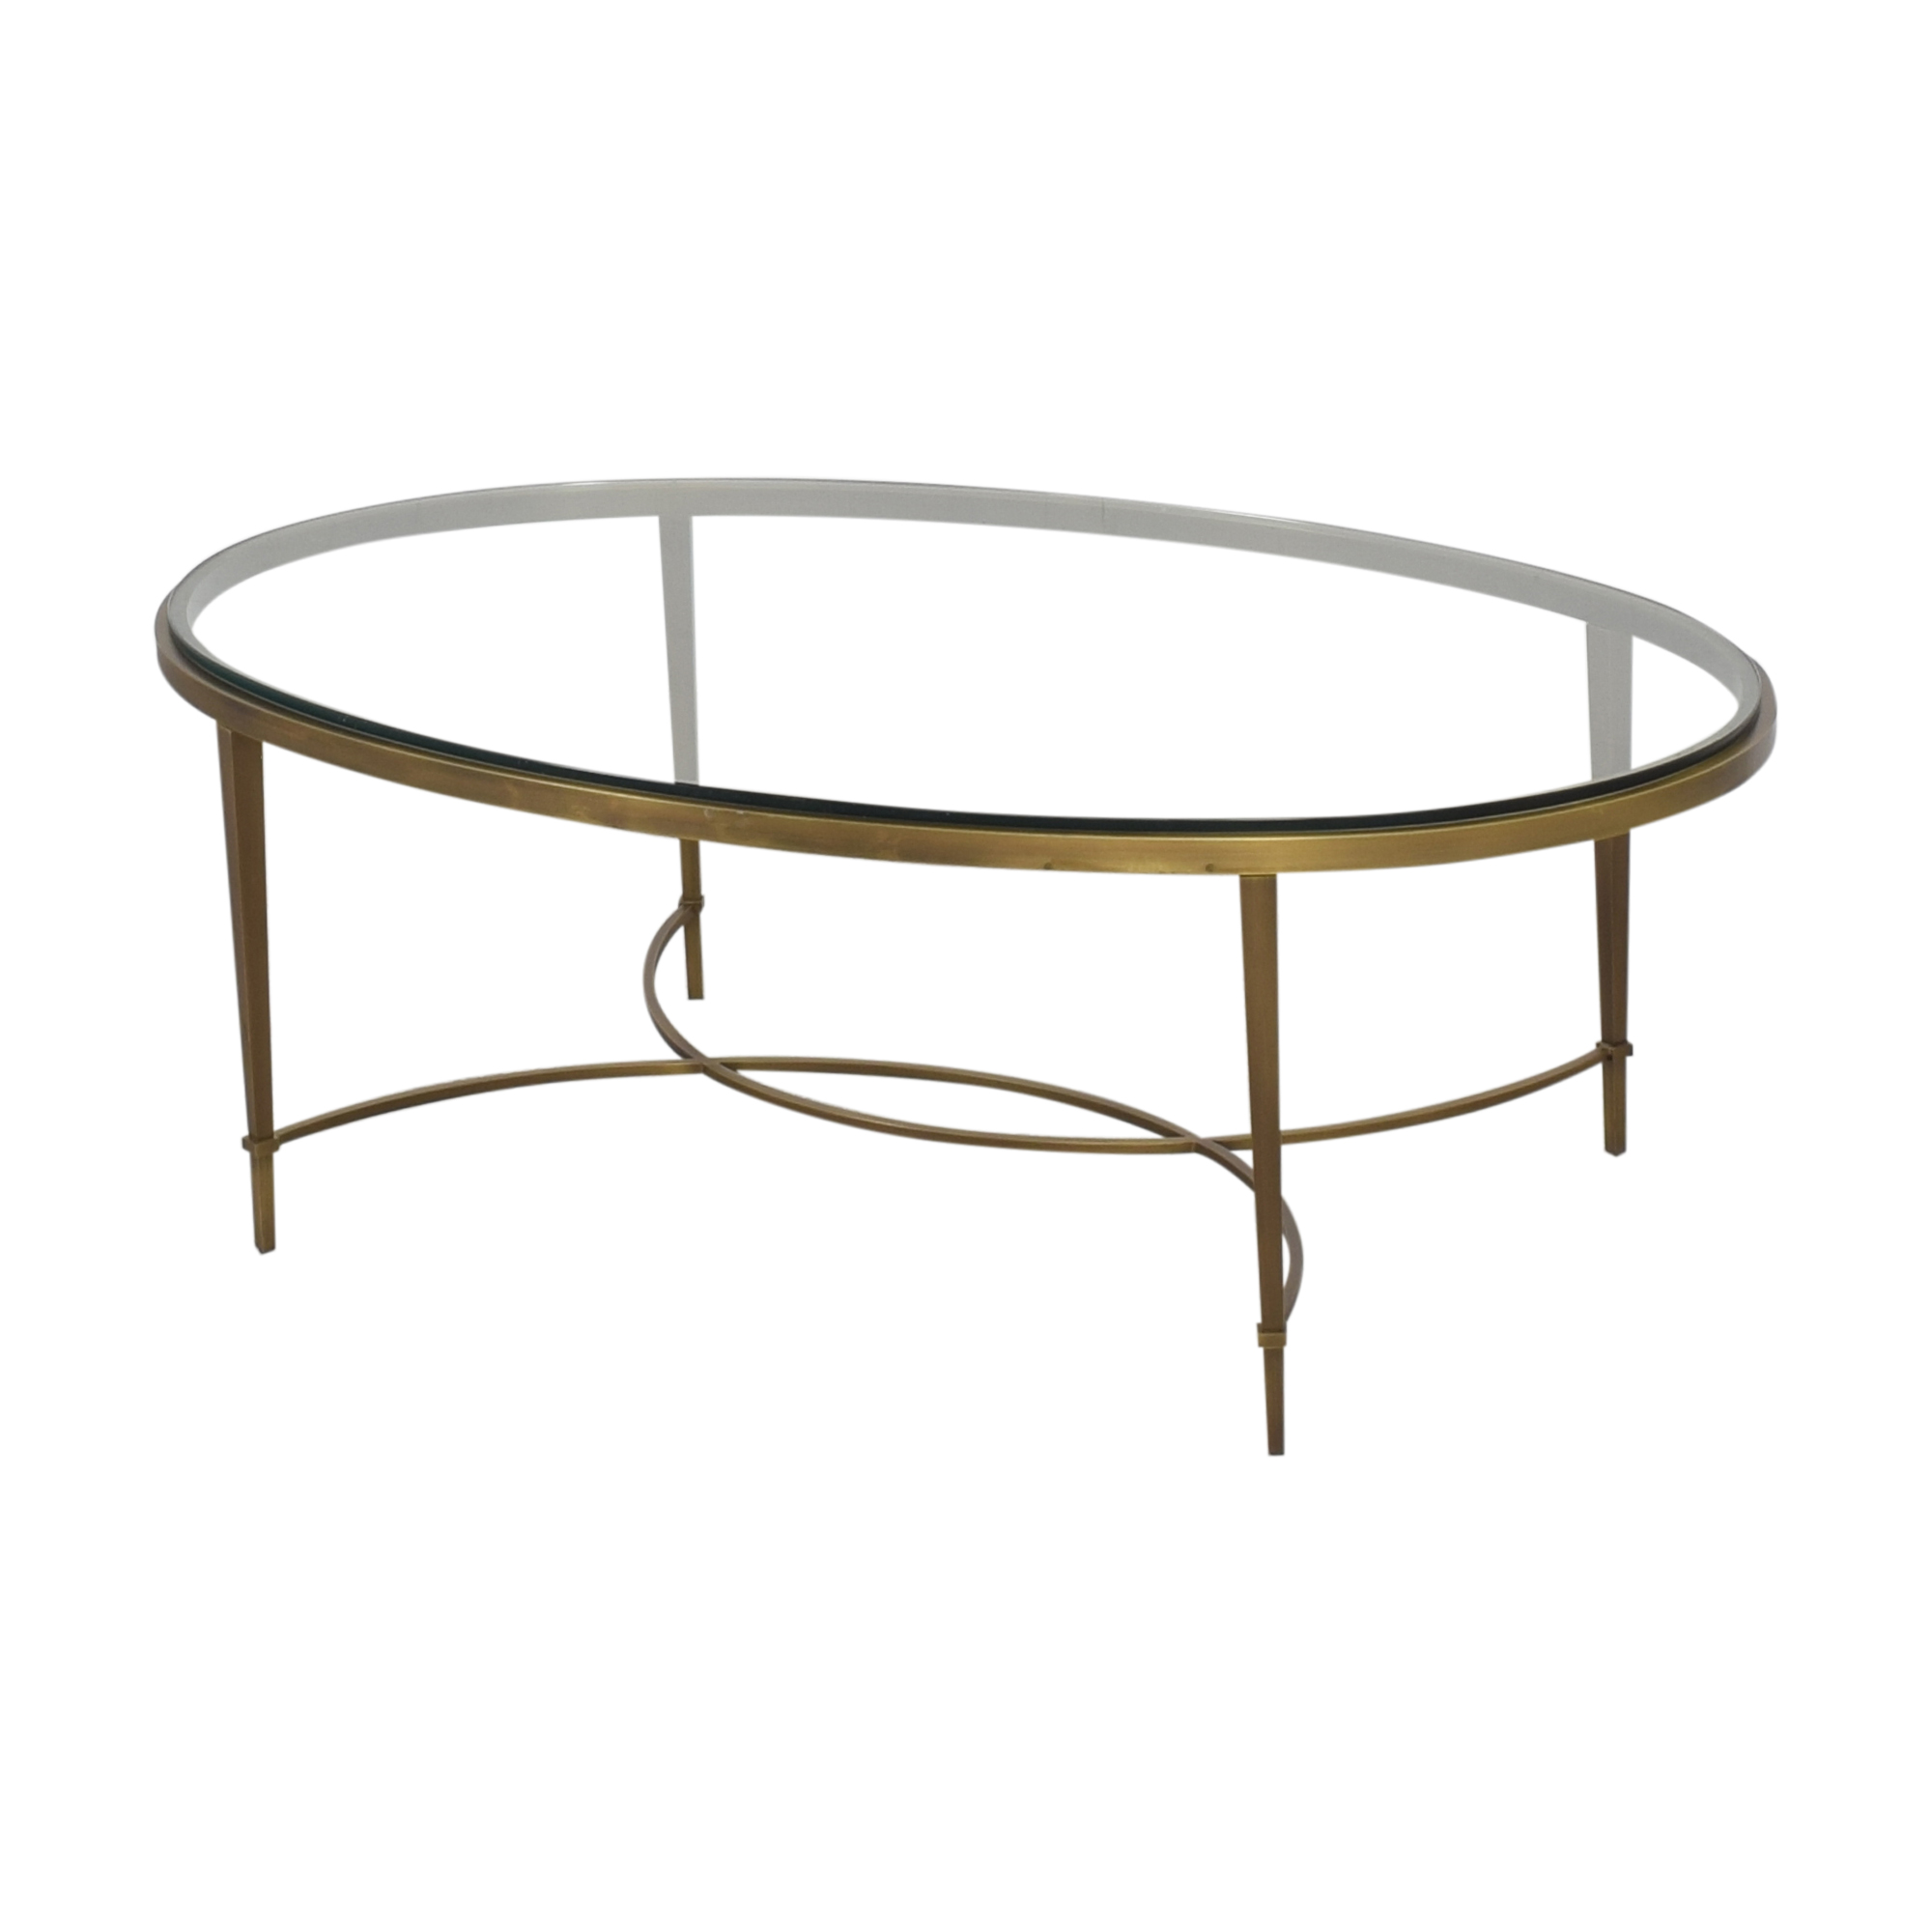 Baker Furniture Baker Furniture Oval Coffee Table for sale